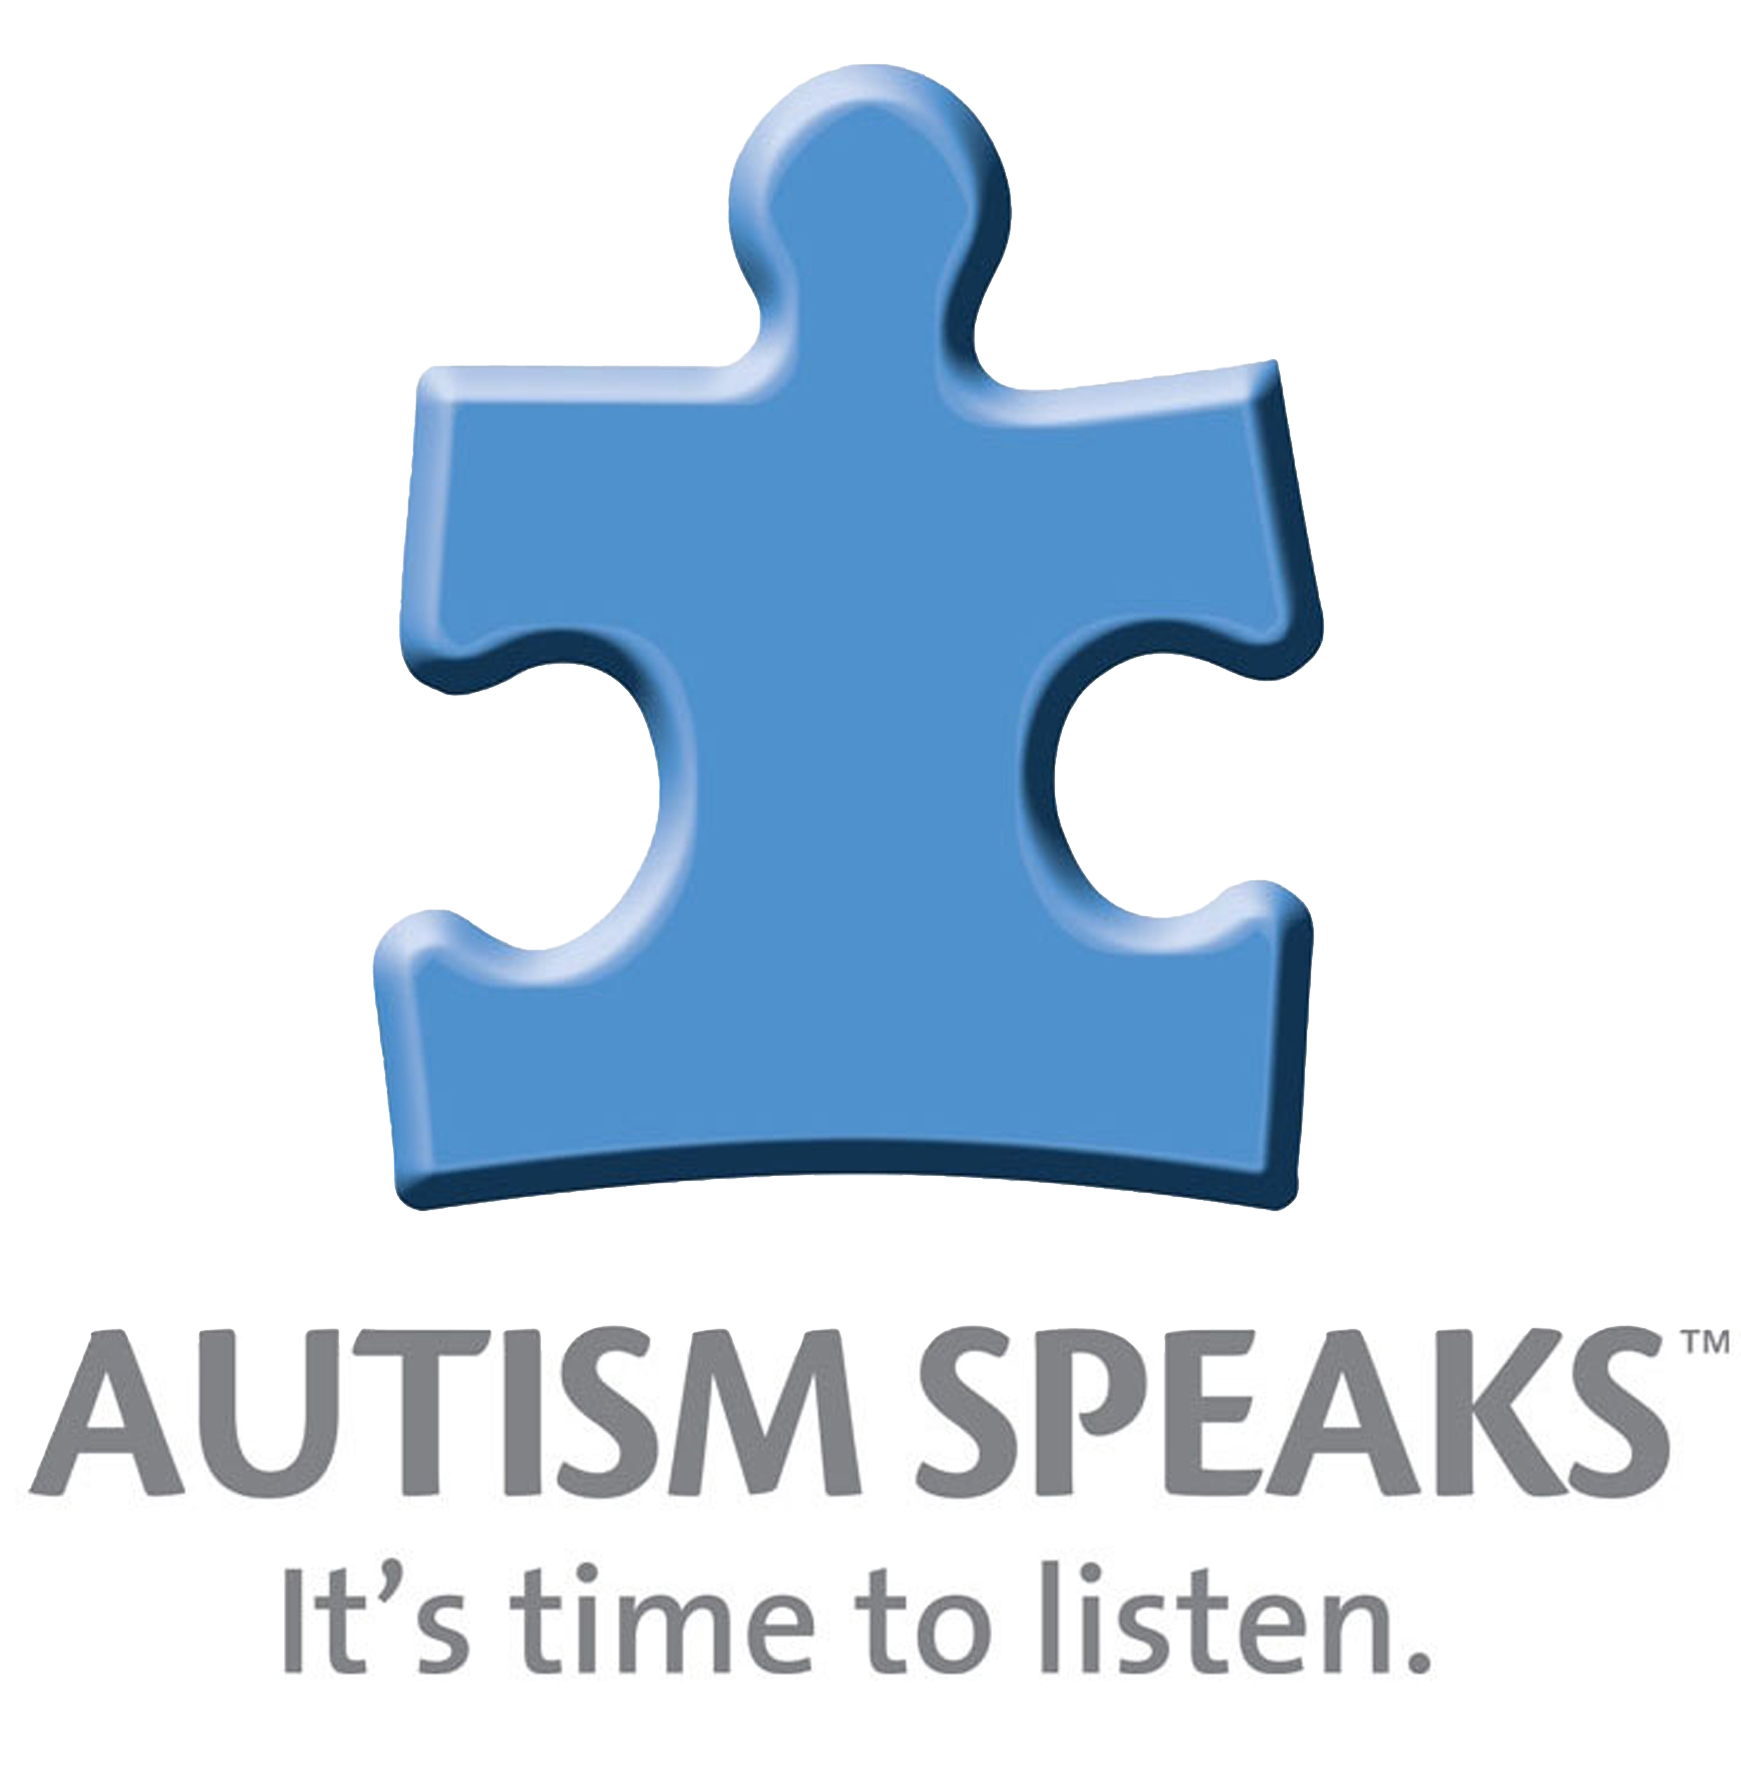 John Elder Robison Leaves Autism Speaks Amid Controversy - Autism Daily  Newscast - Autism Speaks PNG